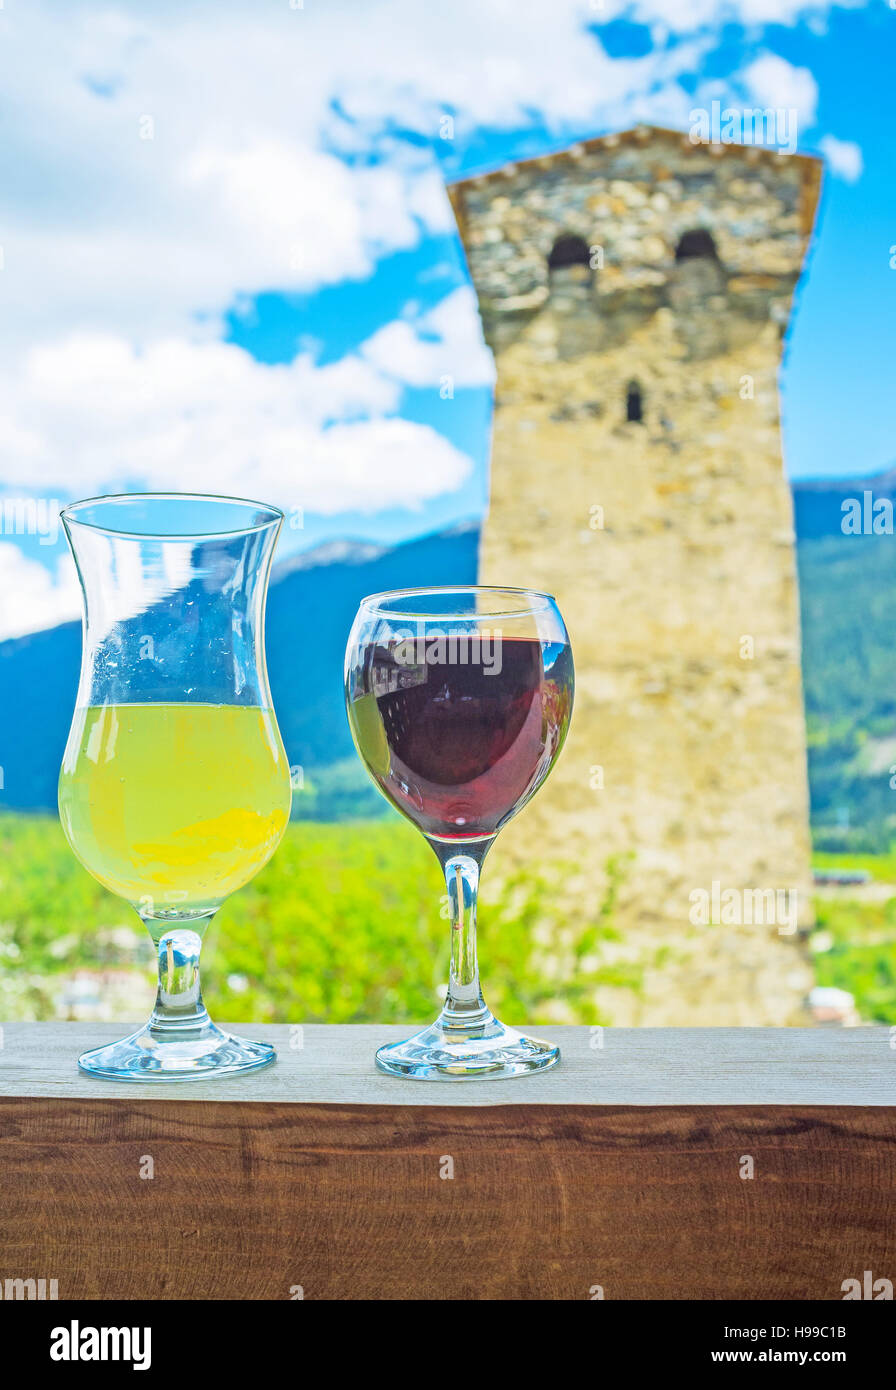 Wines of Gelendzhik - an unusual taste of ancient traditions